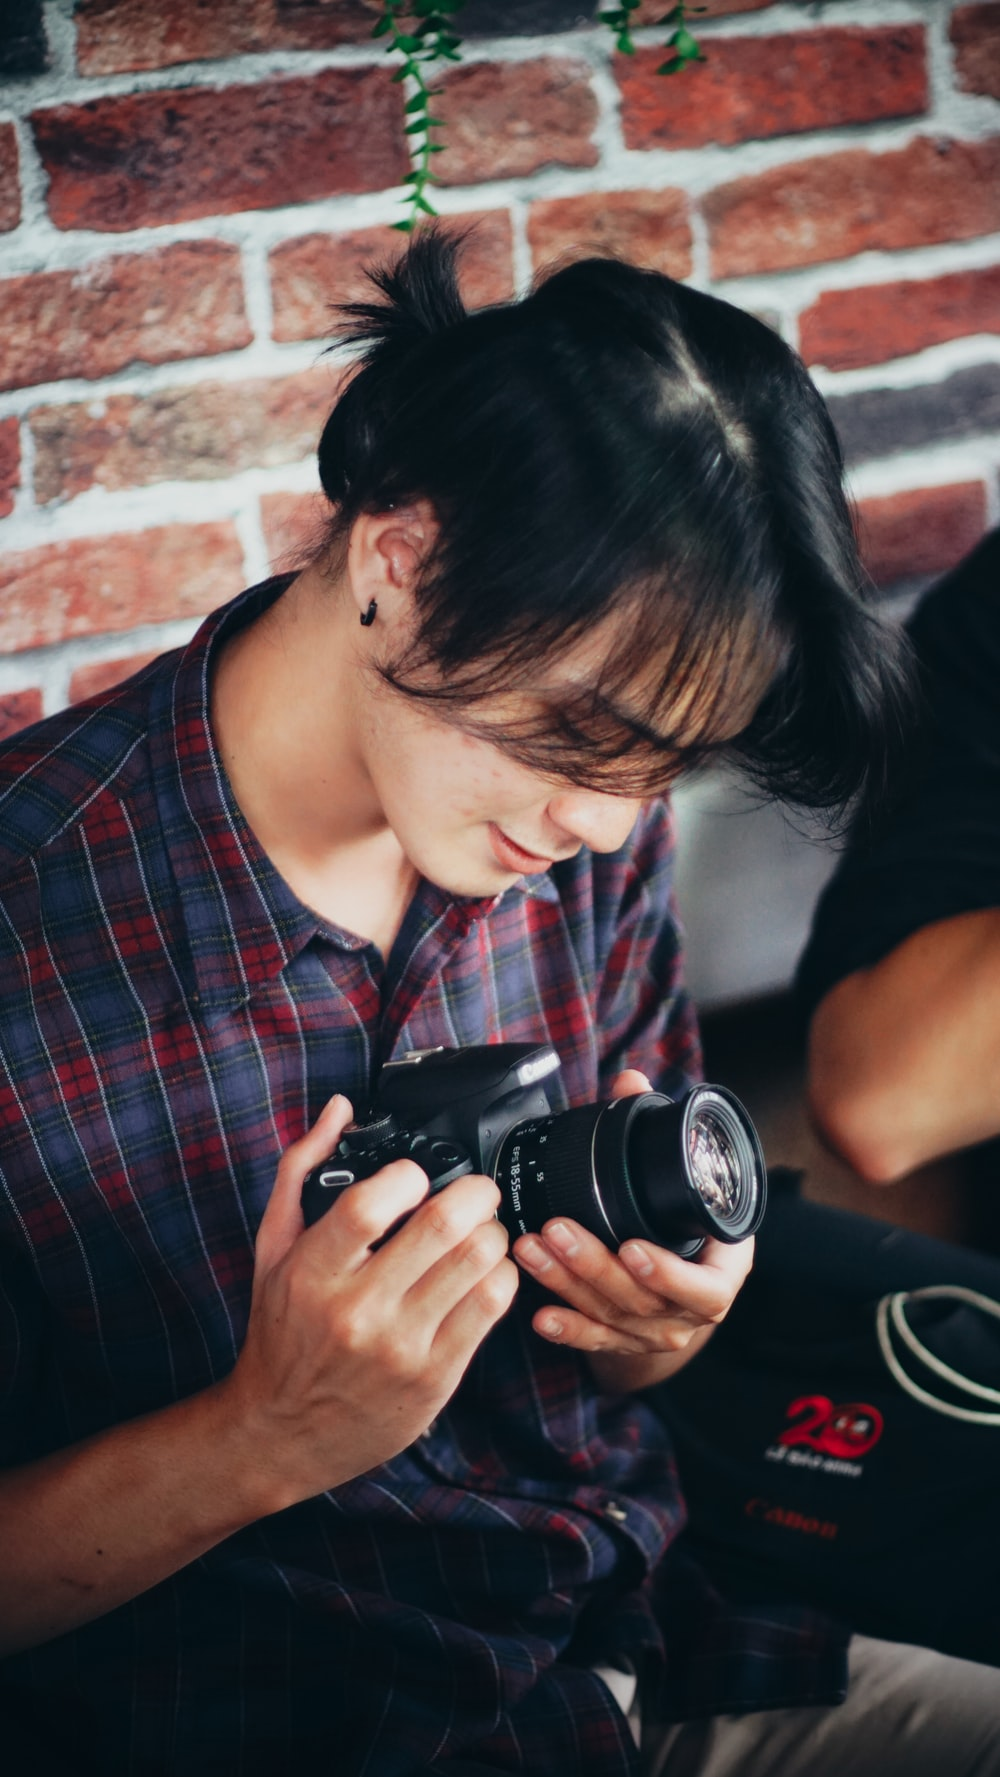 woman in black and red plaid button up shirt holding black dslr camera